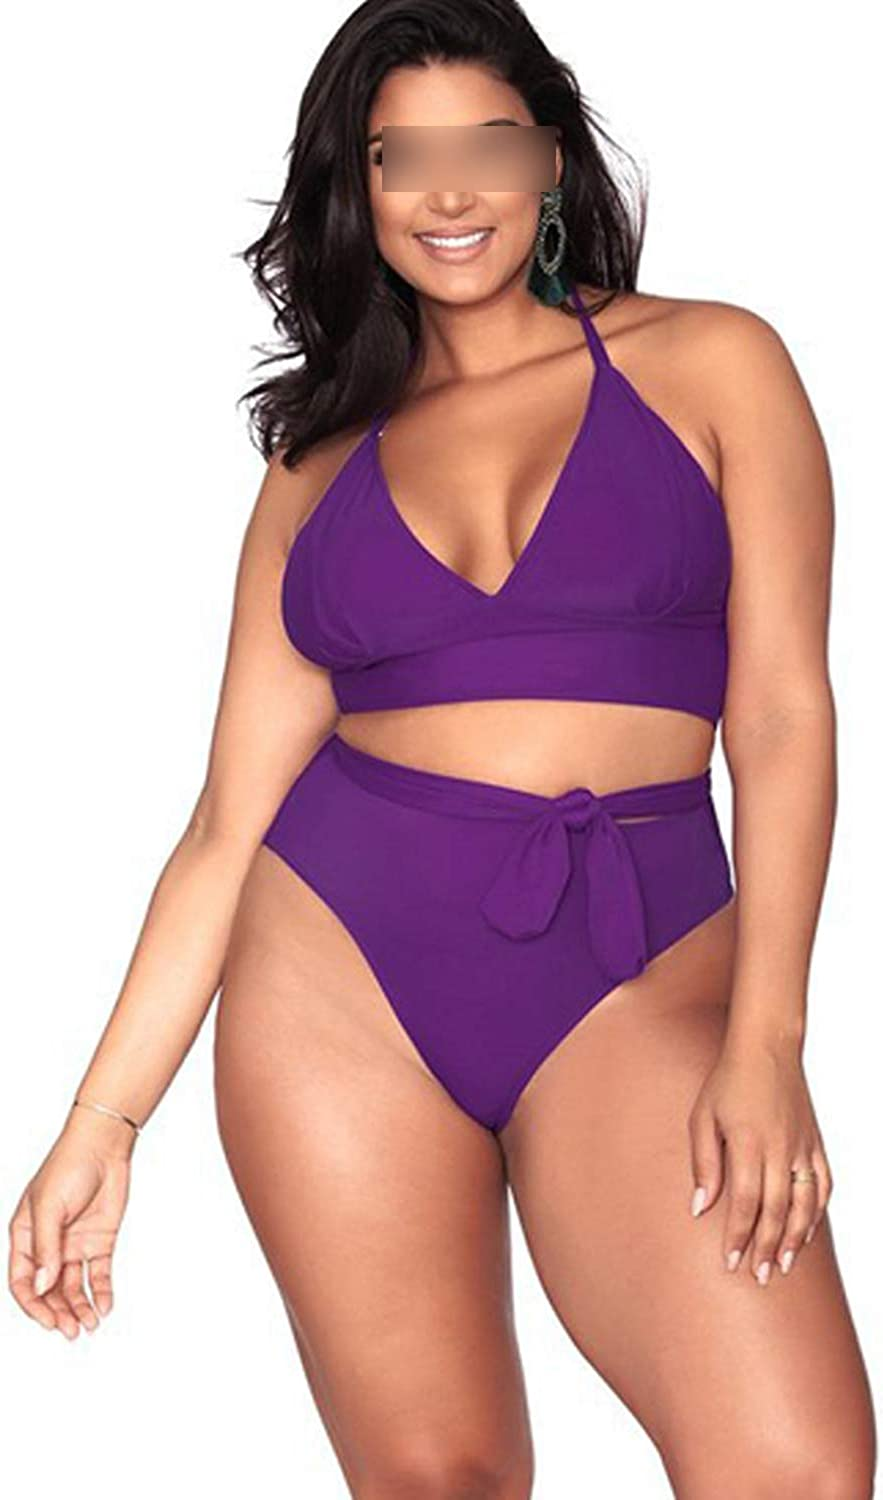 Mihqin Toy Swimsuit Cover The Piece Swimming Suit Big Size Swimwear Plus 5XL Conservative Beach Skirt Solid Color Bikini 61ywV4v8sML